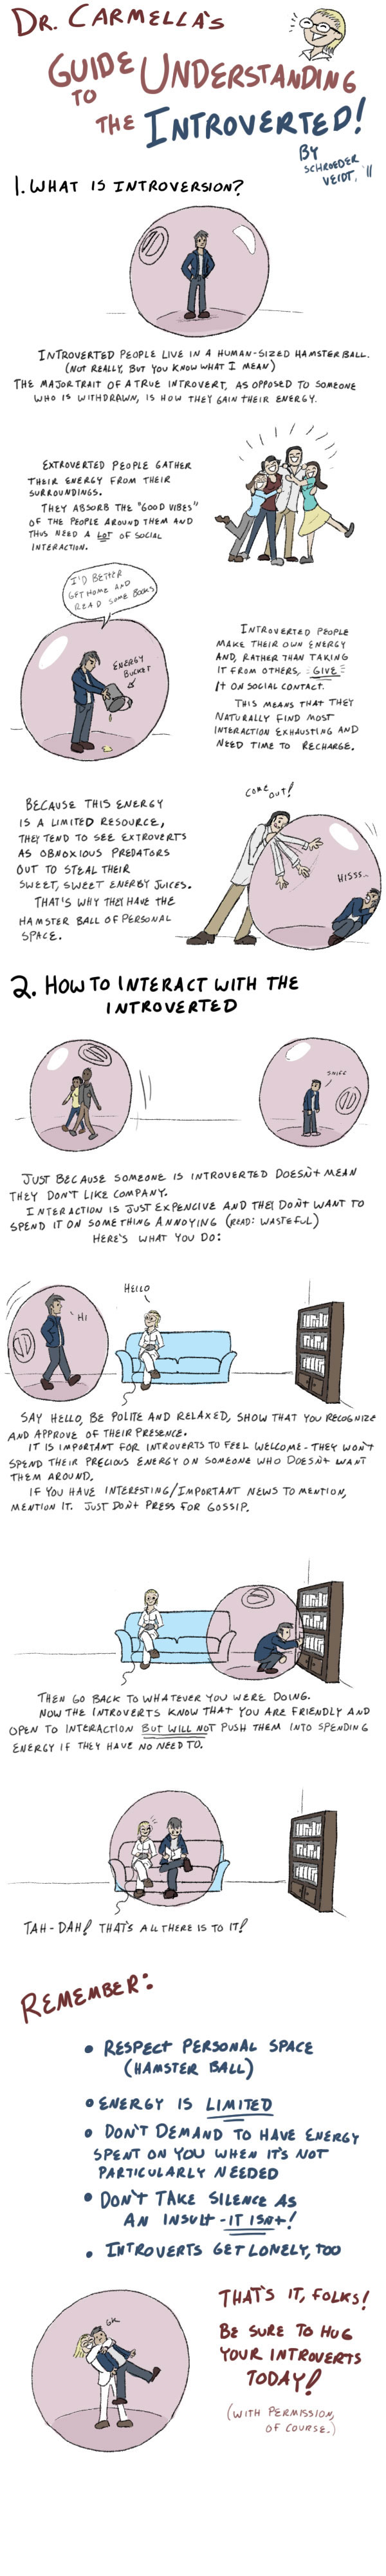 how_to_live_with_introverts_by_sveidt-d4tfoyo